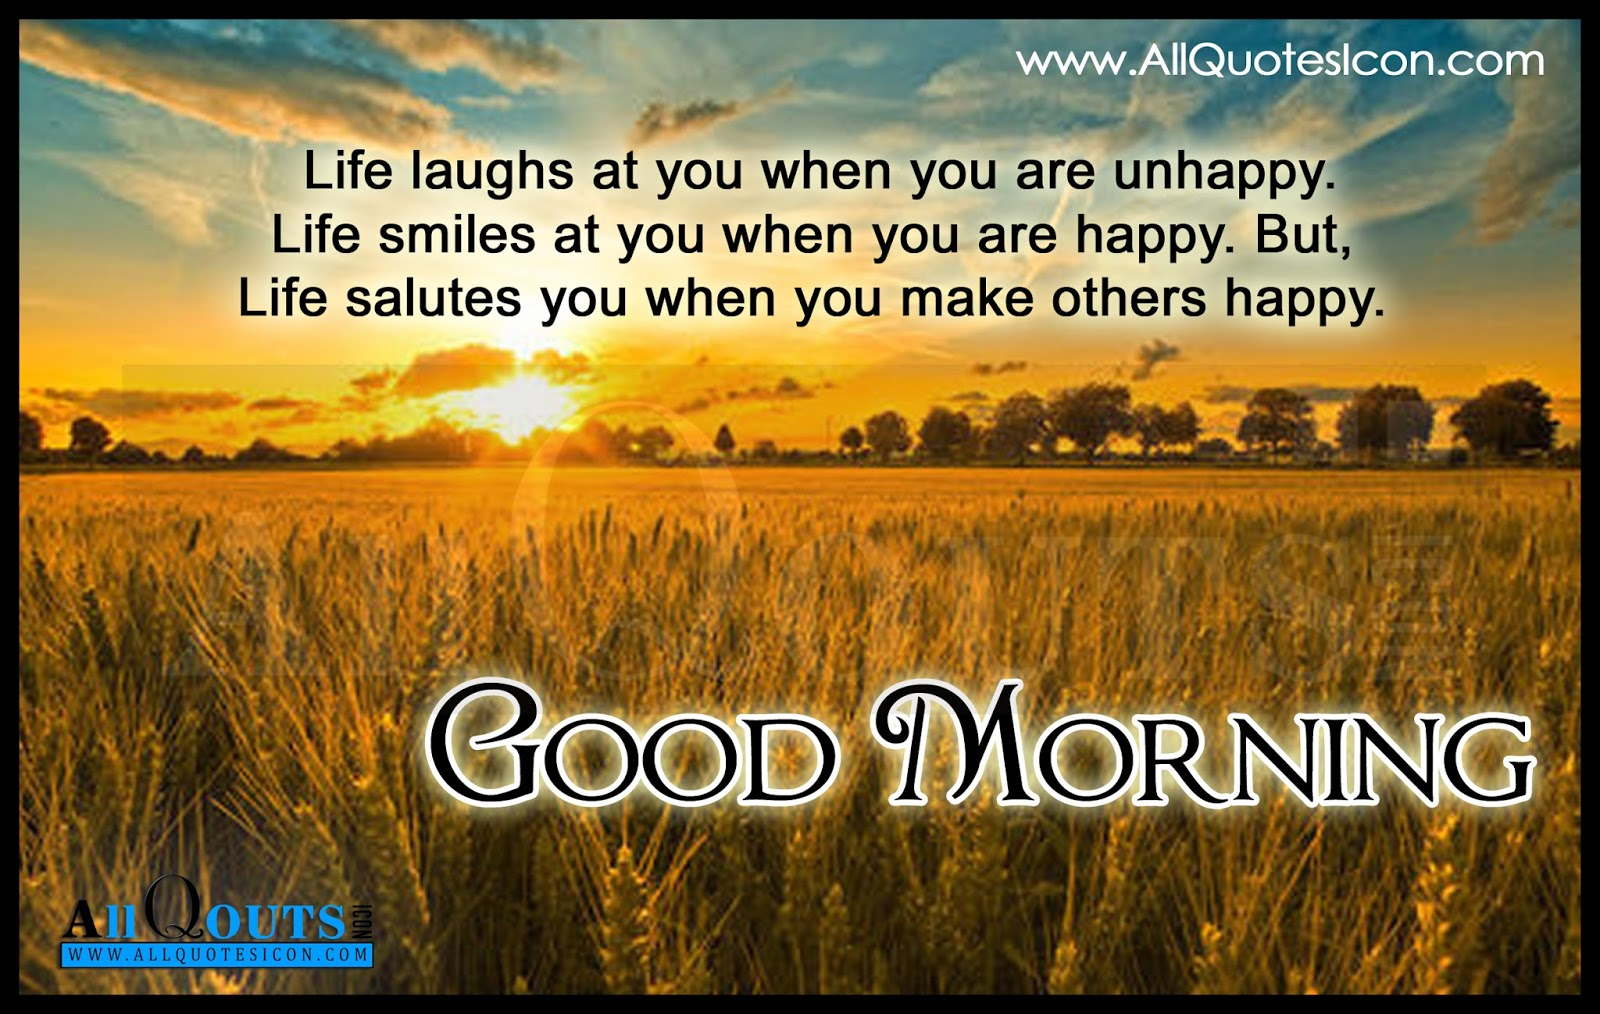 Best good morning greetings in english pictures famous english good morning english quotes images pictures wallpapers photos m4hsunfo Images